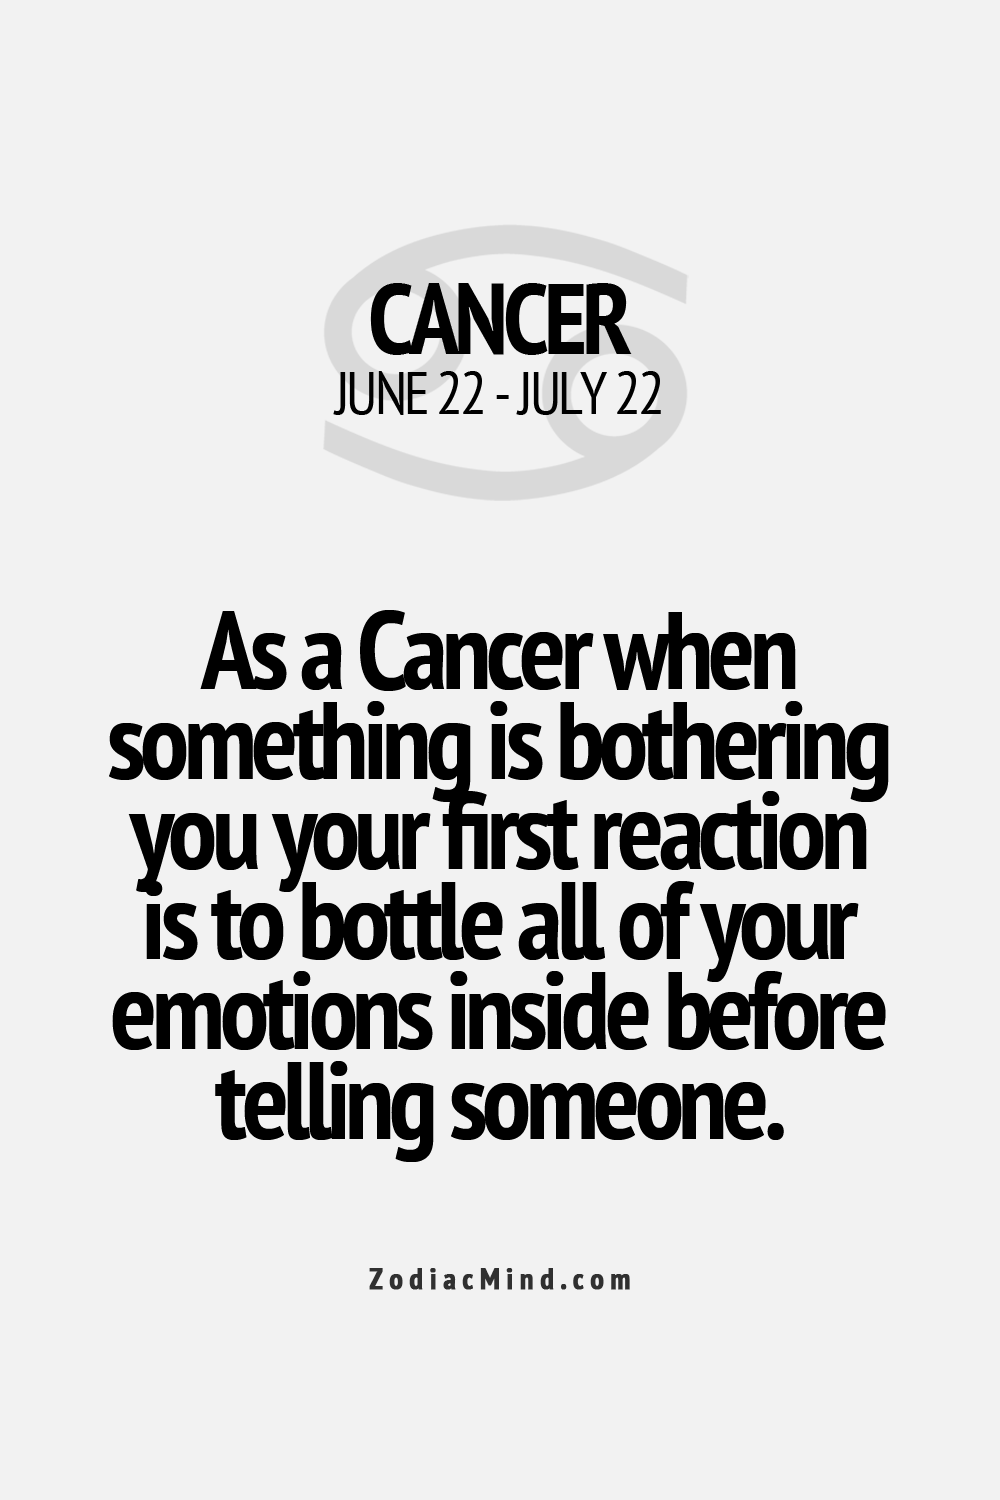 Pin By Lyn On Cancer Sign Things In 2020 Cancer Zodiac Facts Zodiac Signs Cancer Cancer Zodiac